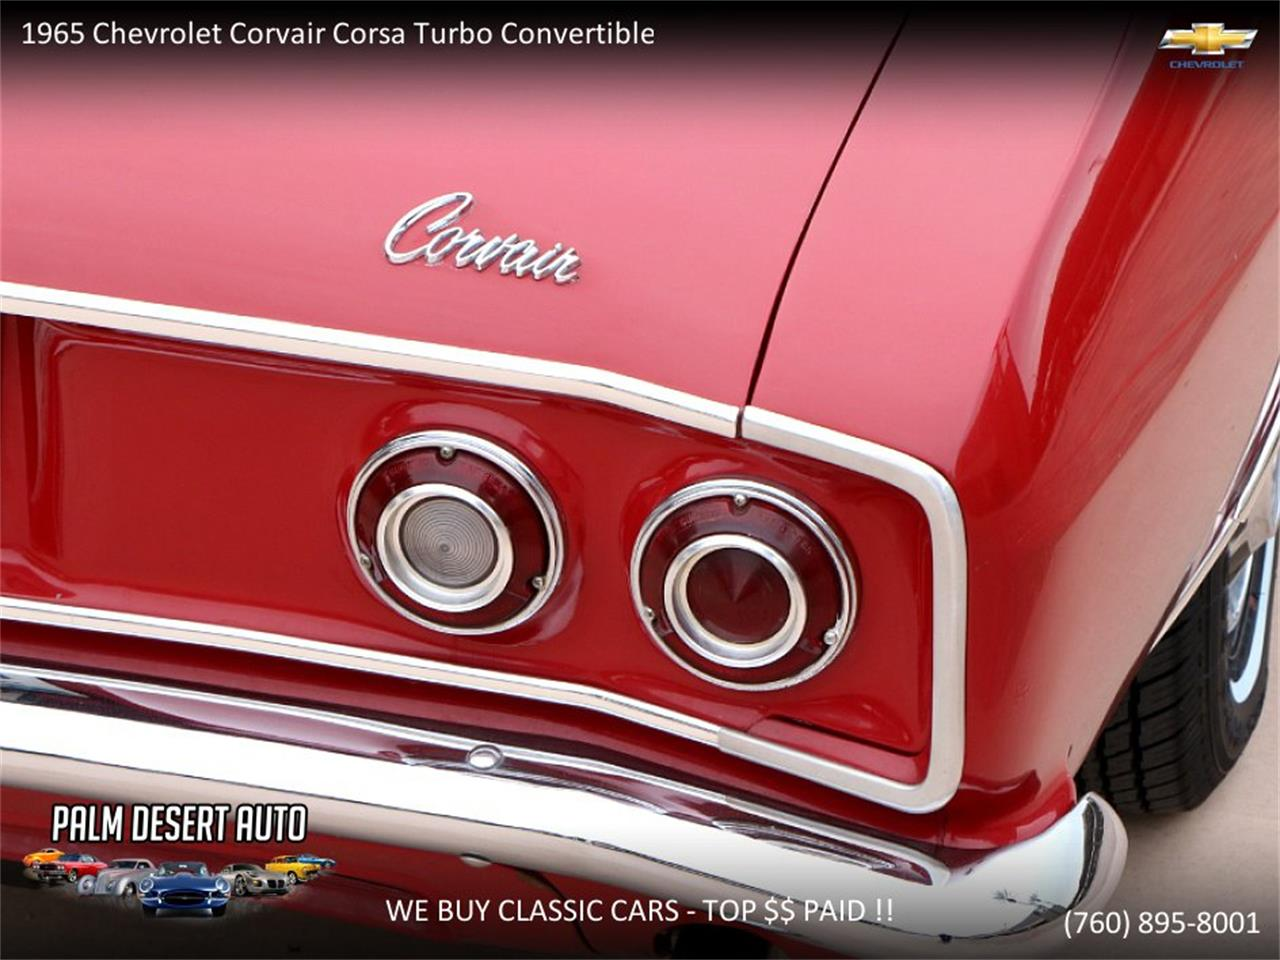 Large Picture of Classic '65 Chevrolet Corvair located in Palm Desert  California - $17,750.00 Offered by Palm Desert Auto - PFFC